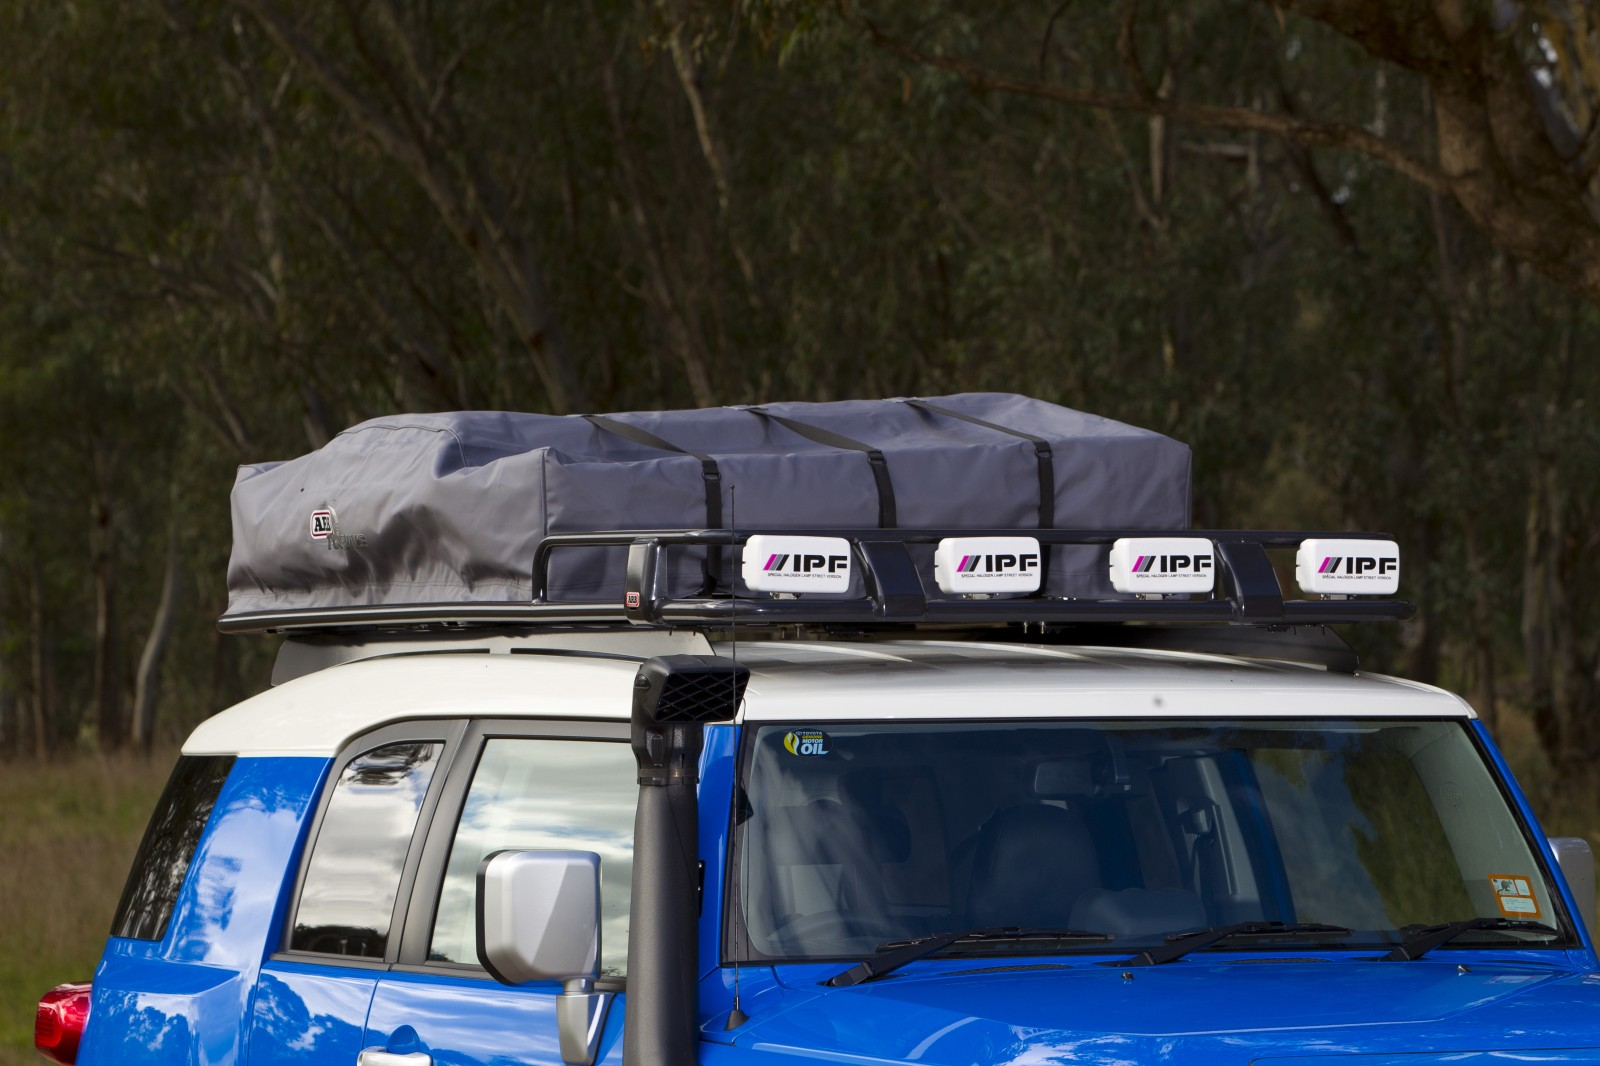 For full Warranty information visit //.arb.com.au/about/policy/. ARB Series III Simpson Rooftop Tent & Simpson Rooftop Tent Sturdy durable and hugely practical